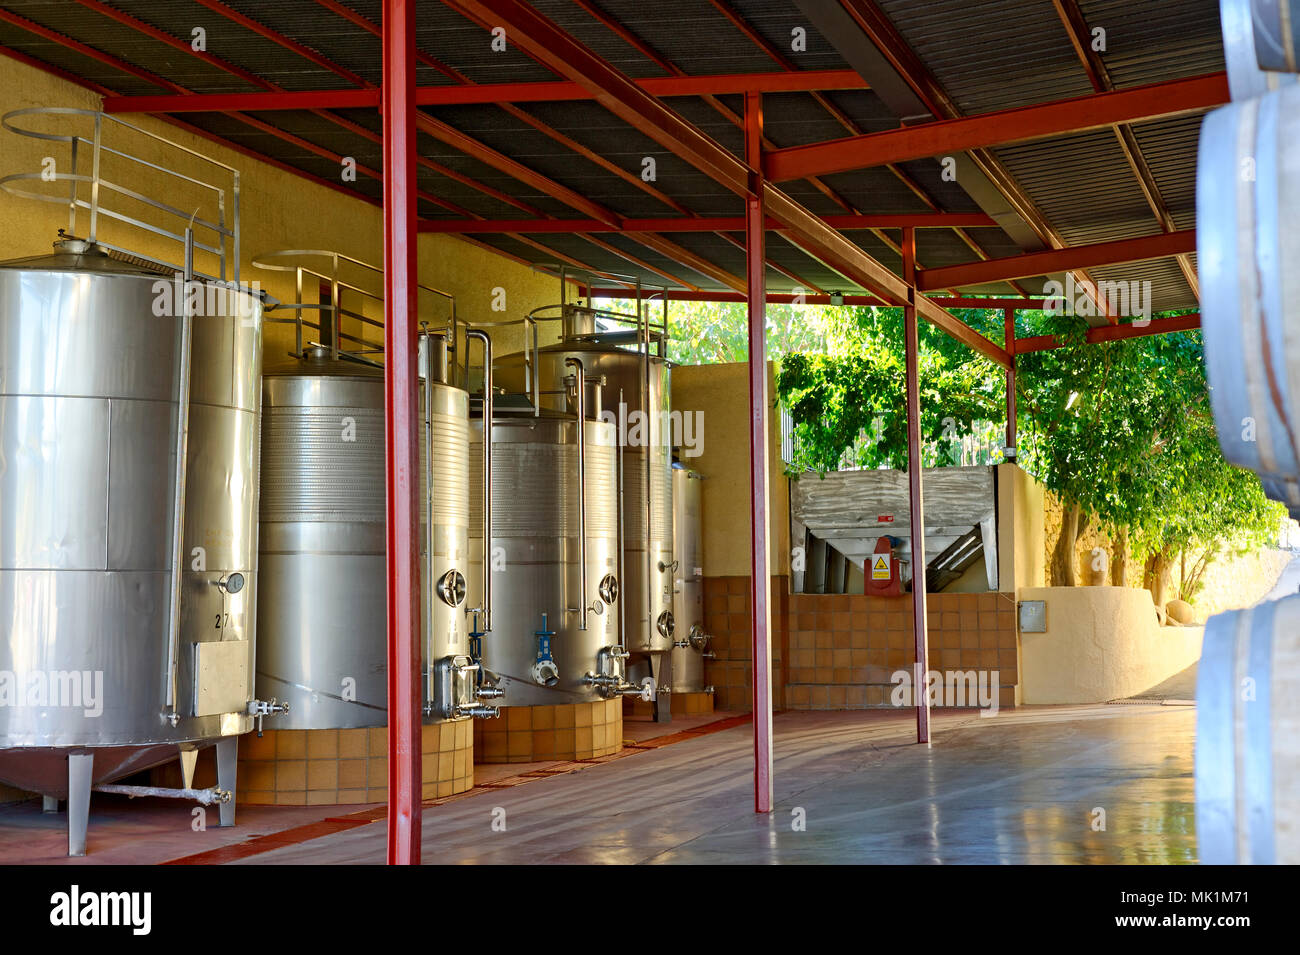 Winery in the Alicante region Spain - Stock Image